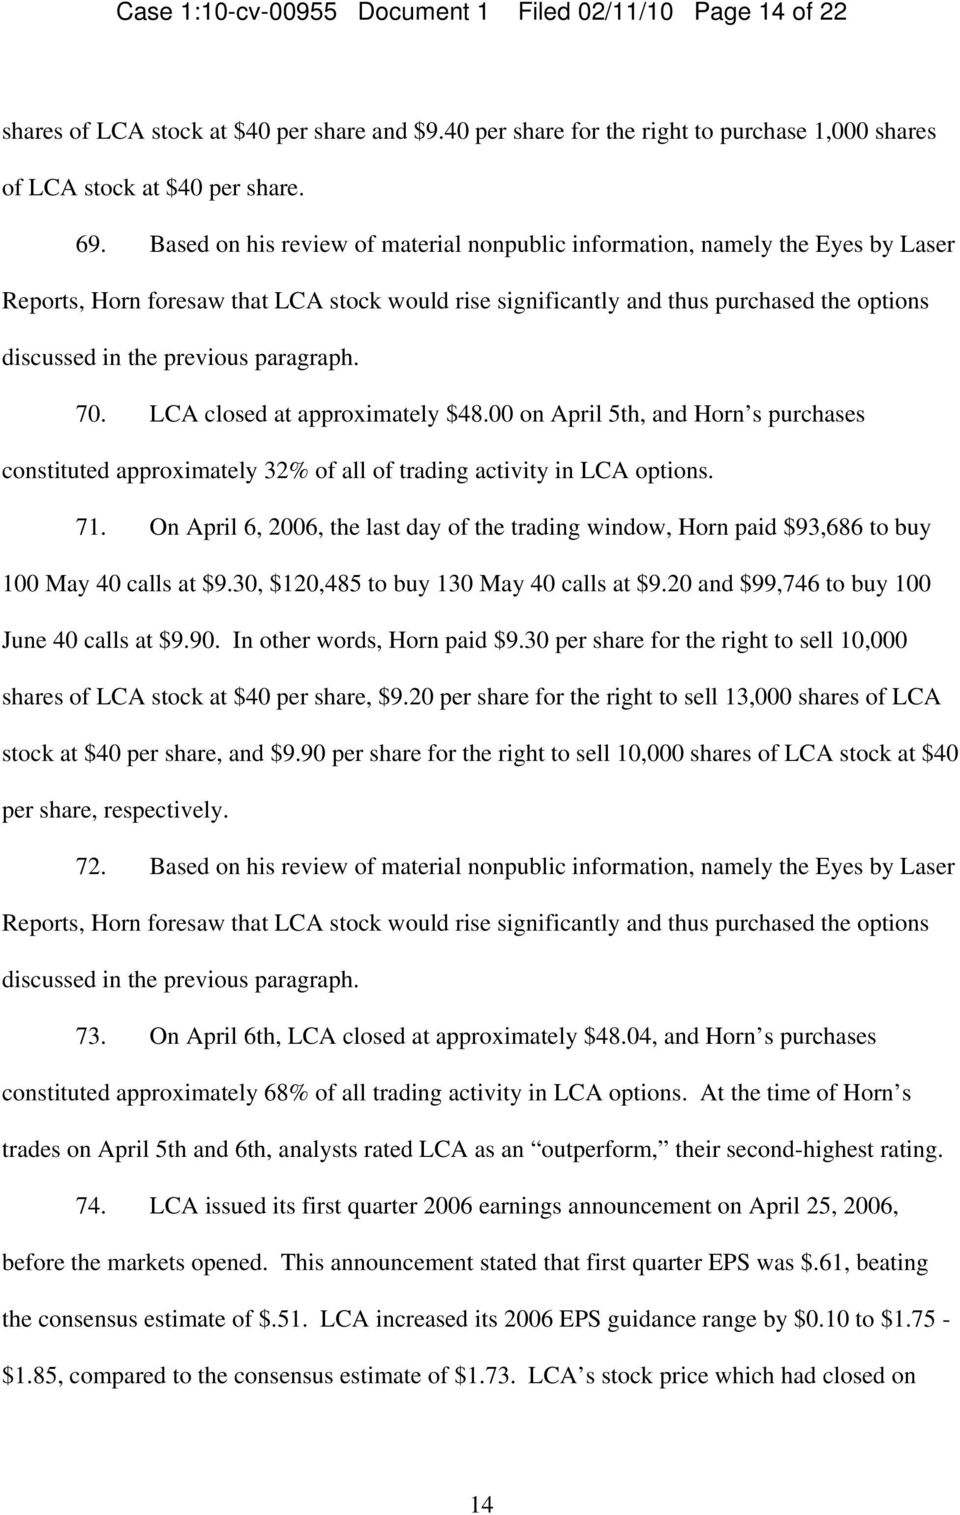 paragraph. 70. LCA closed at approximately $48.00 on April 5th, and Horn s purchases constituted approximately 32% of all of trading activity in LCA options. 71.